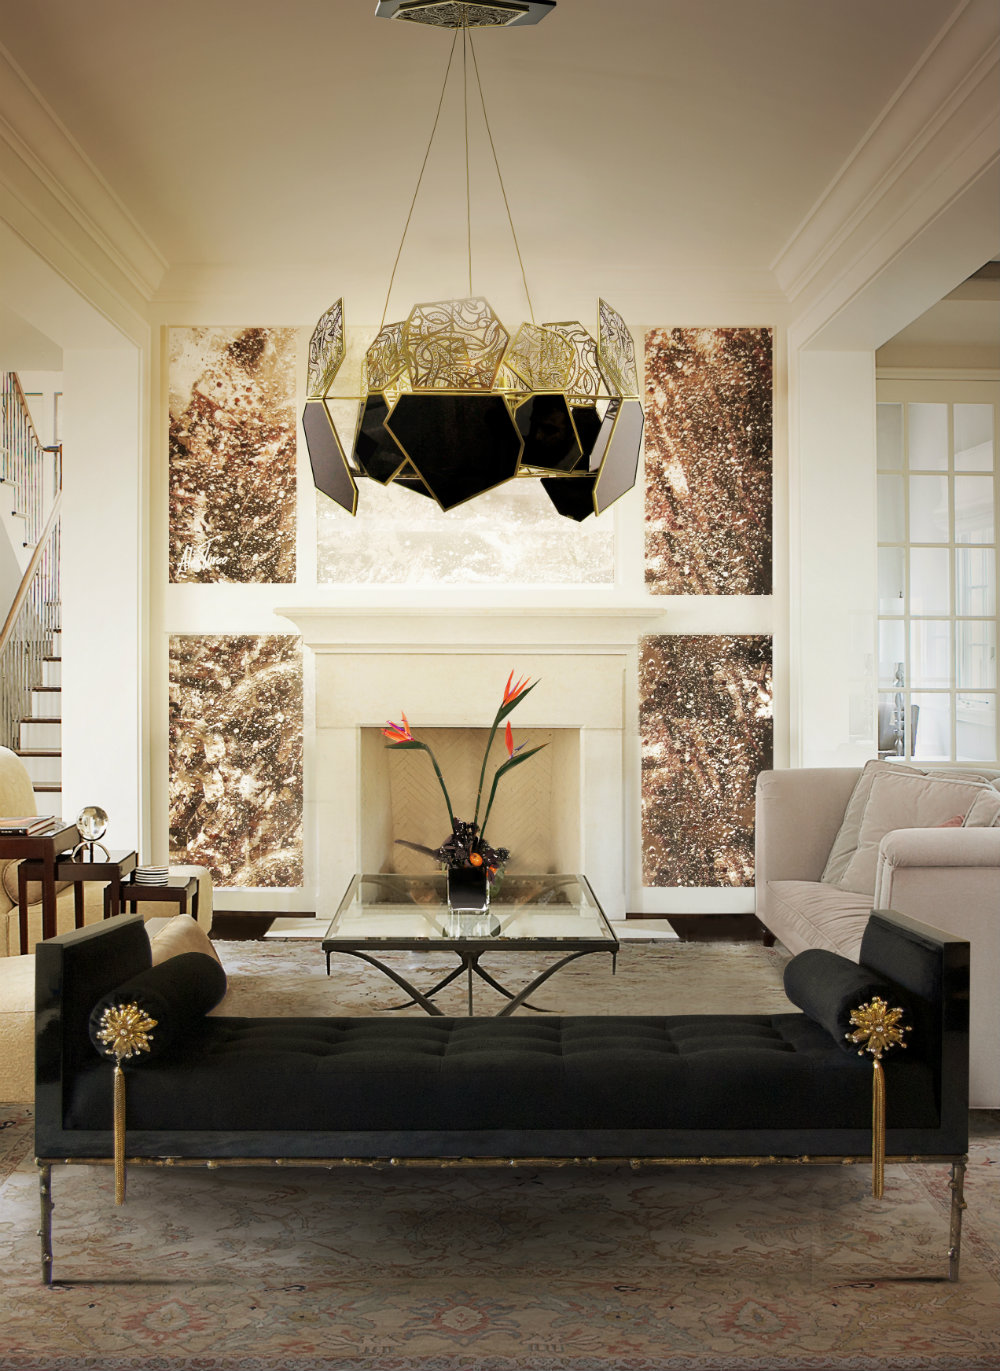 10 Interior Design Trends For Your Living Room In 2017 8